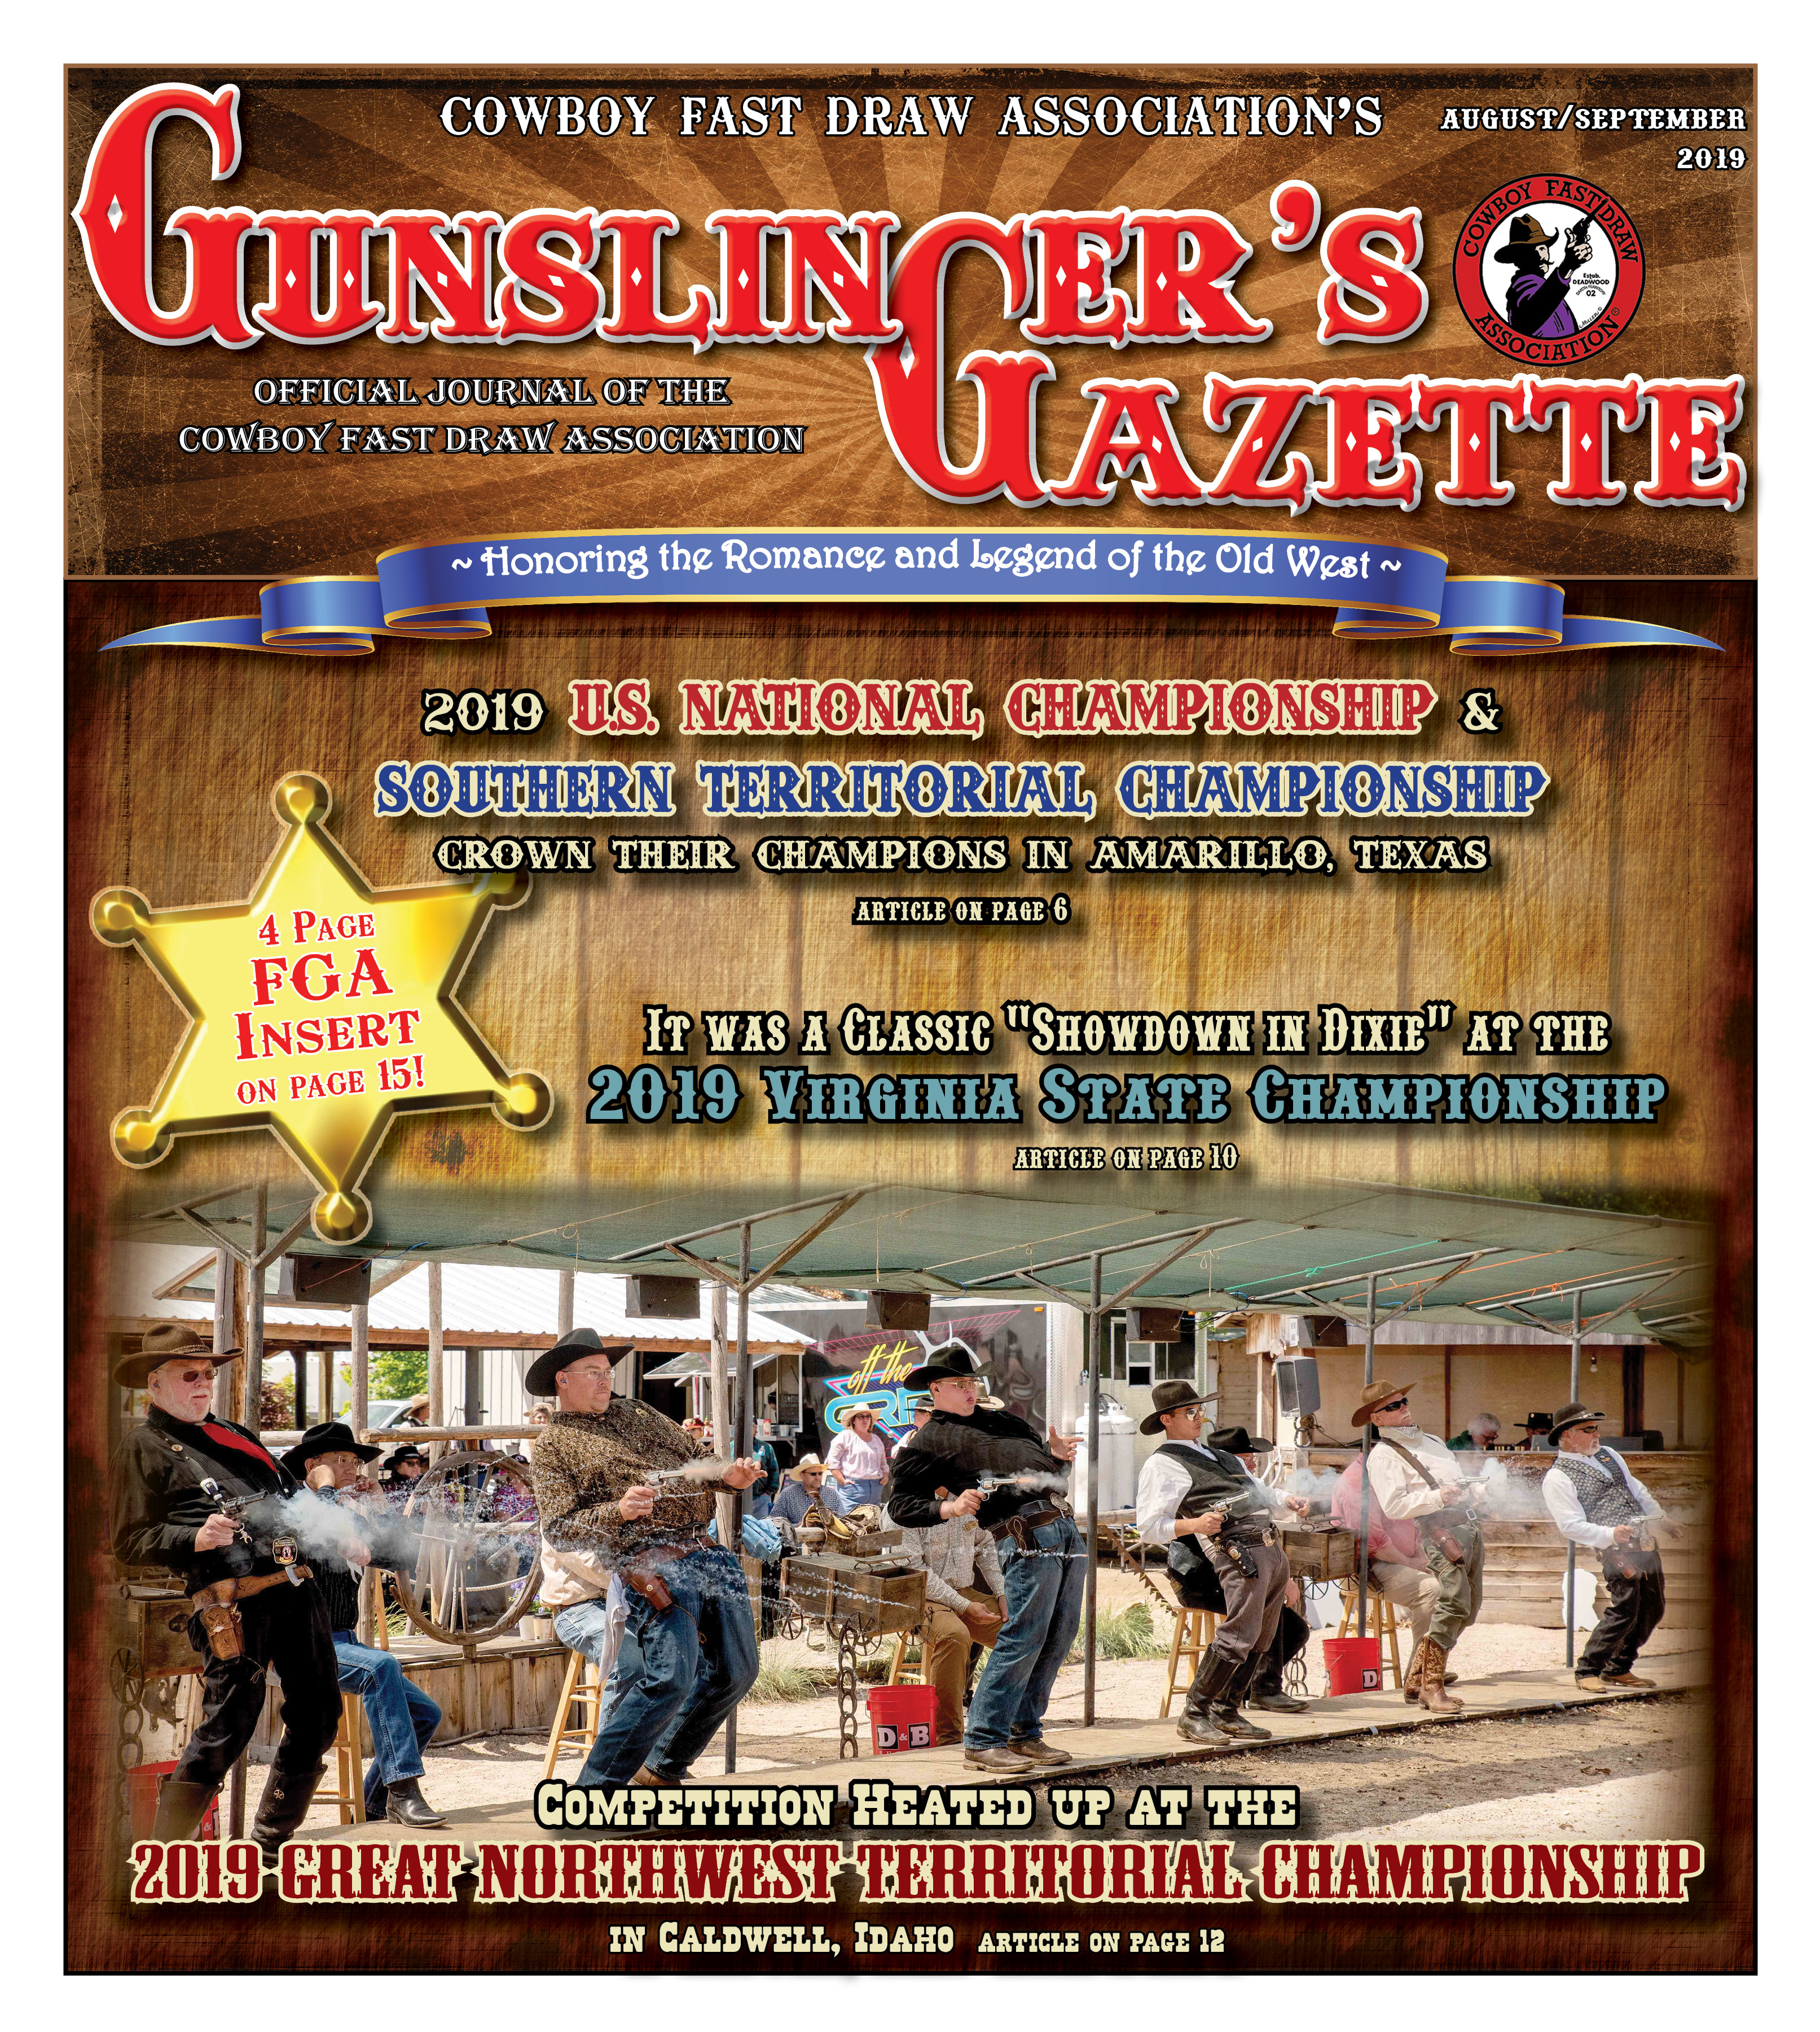 GunslingersGazette August September 2019 cover